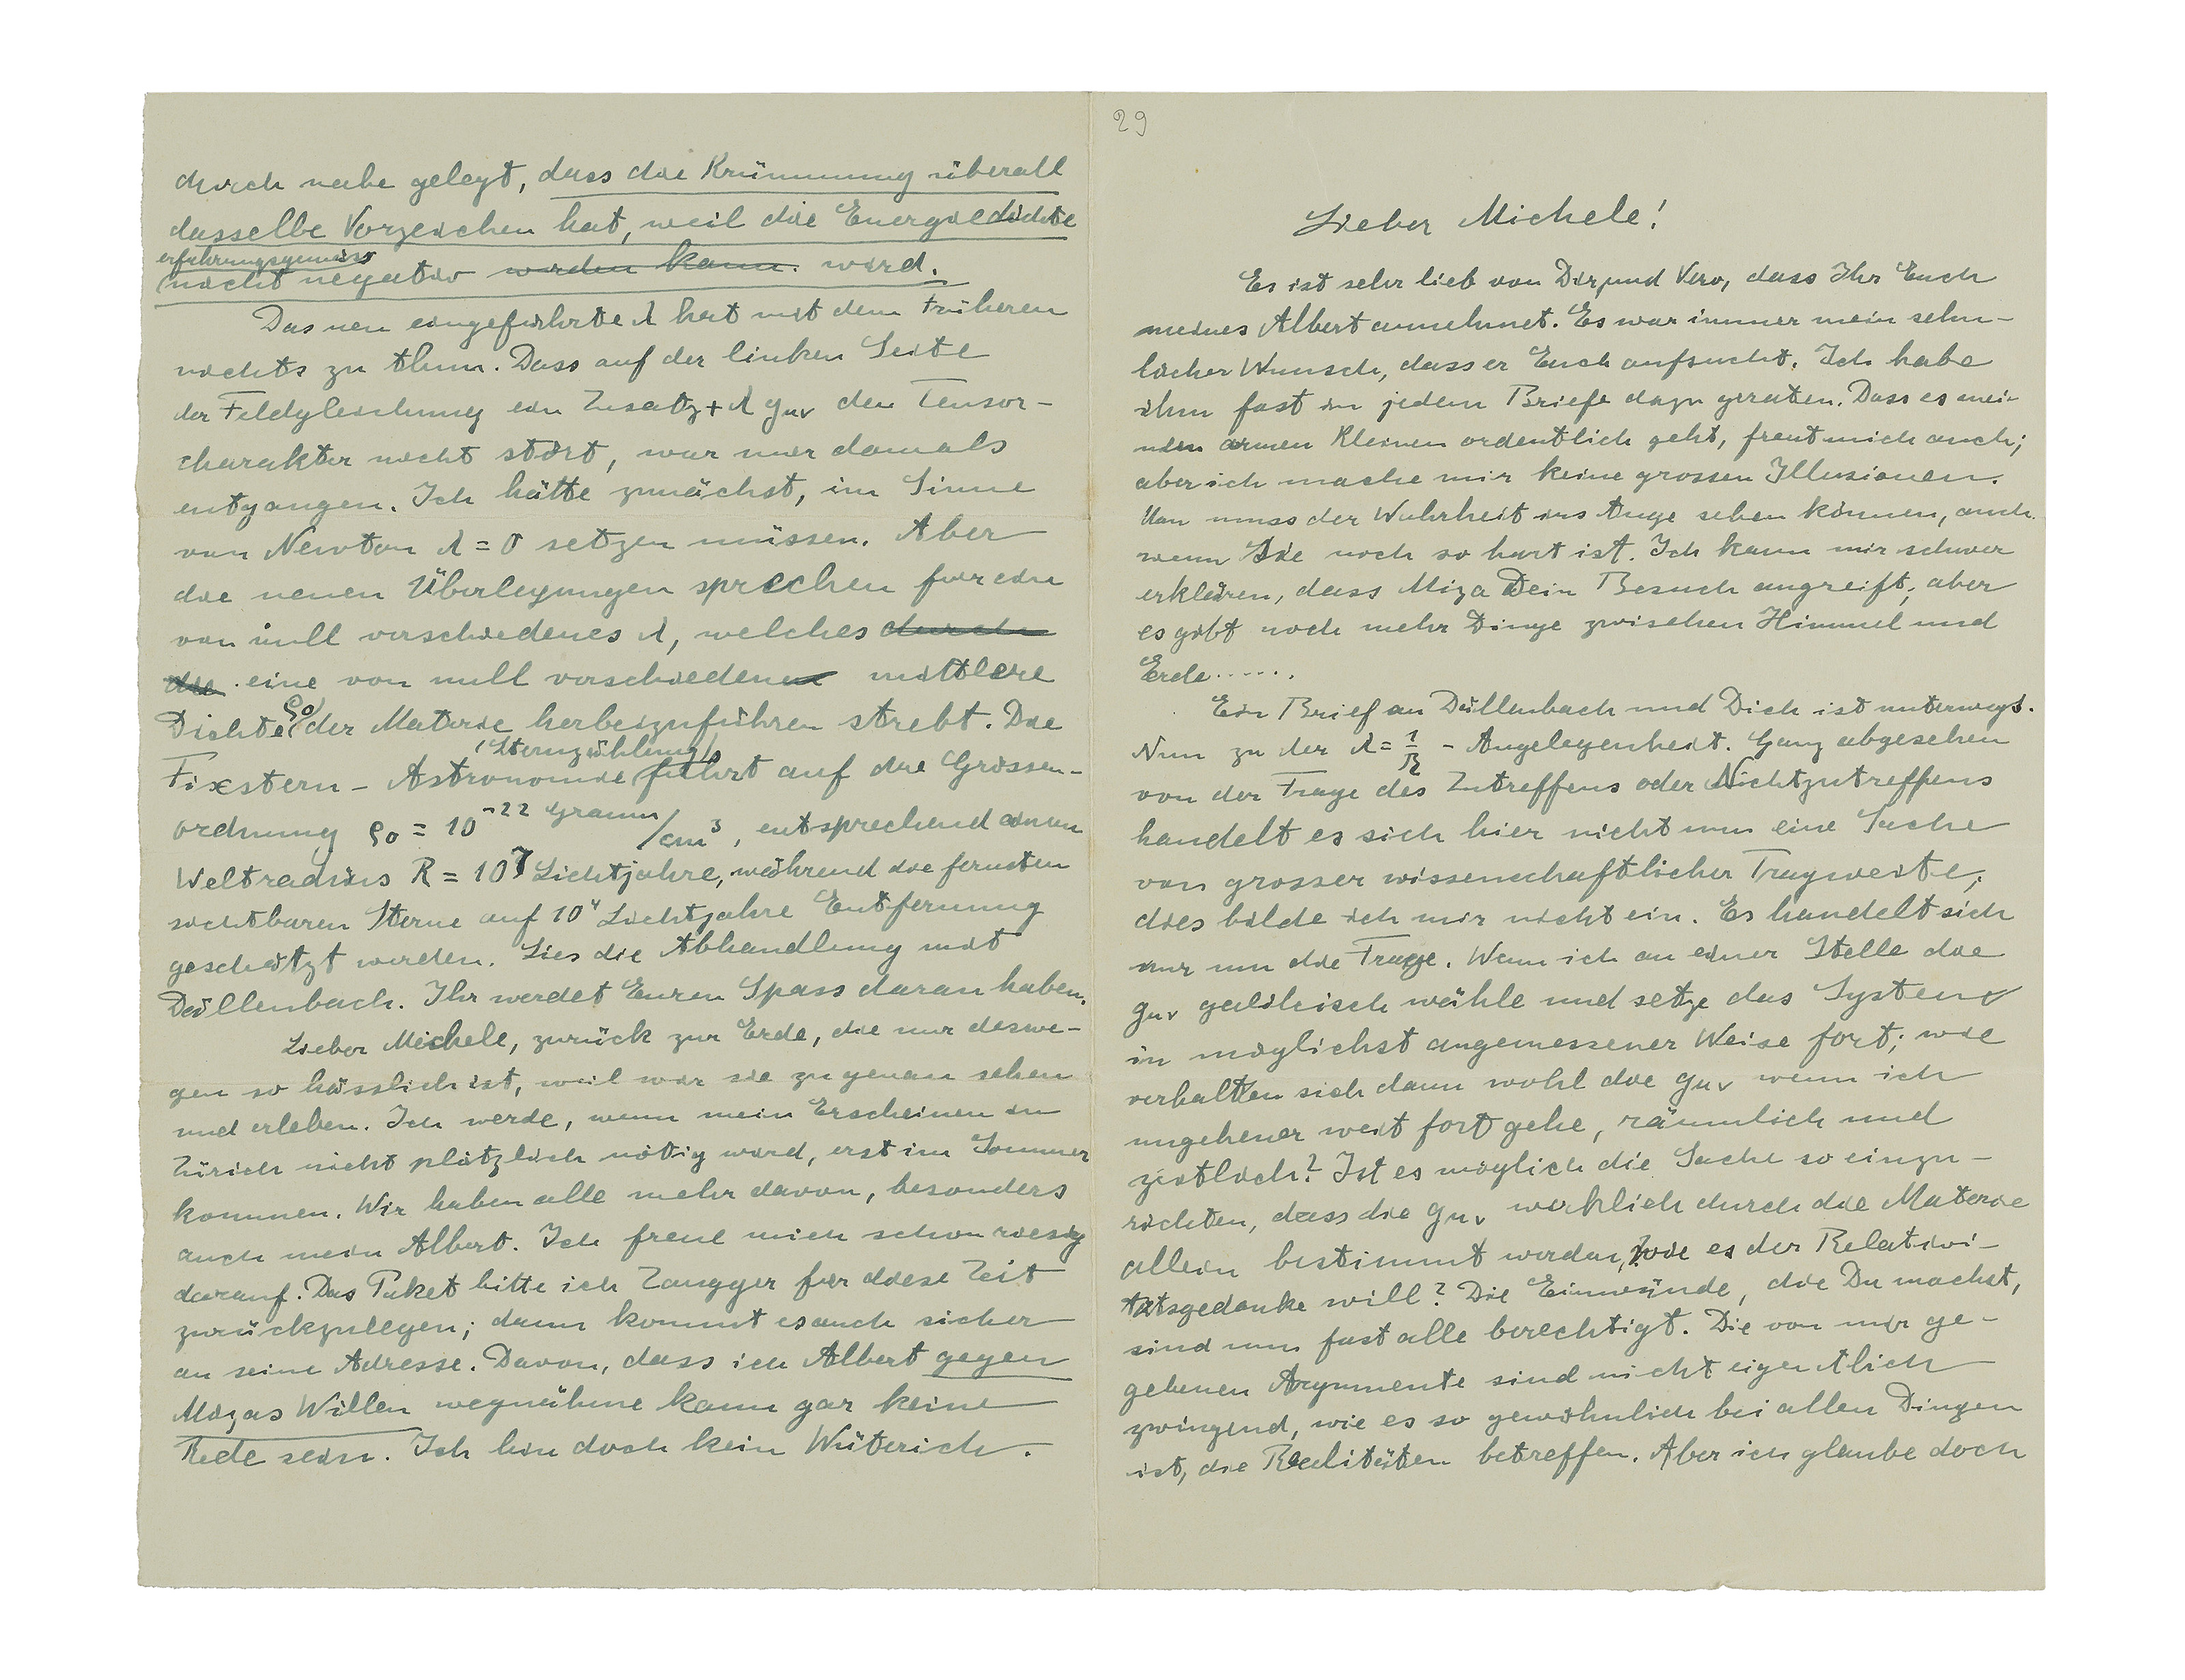 EINSTEIN, Albert (1879-1955). Autograph letter signed ('Albert') to Michele Besso, n.p., n.d. [Berlin, December 1916].